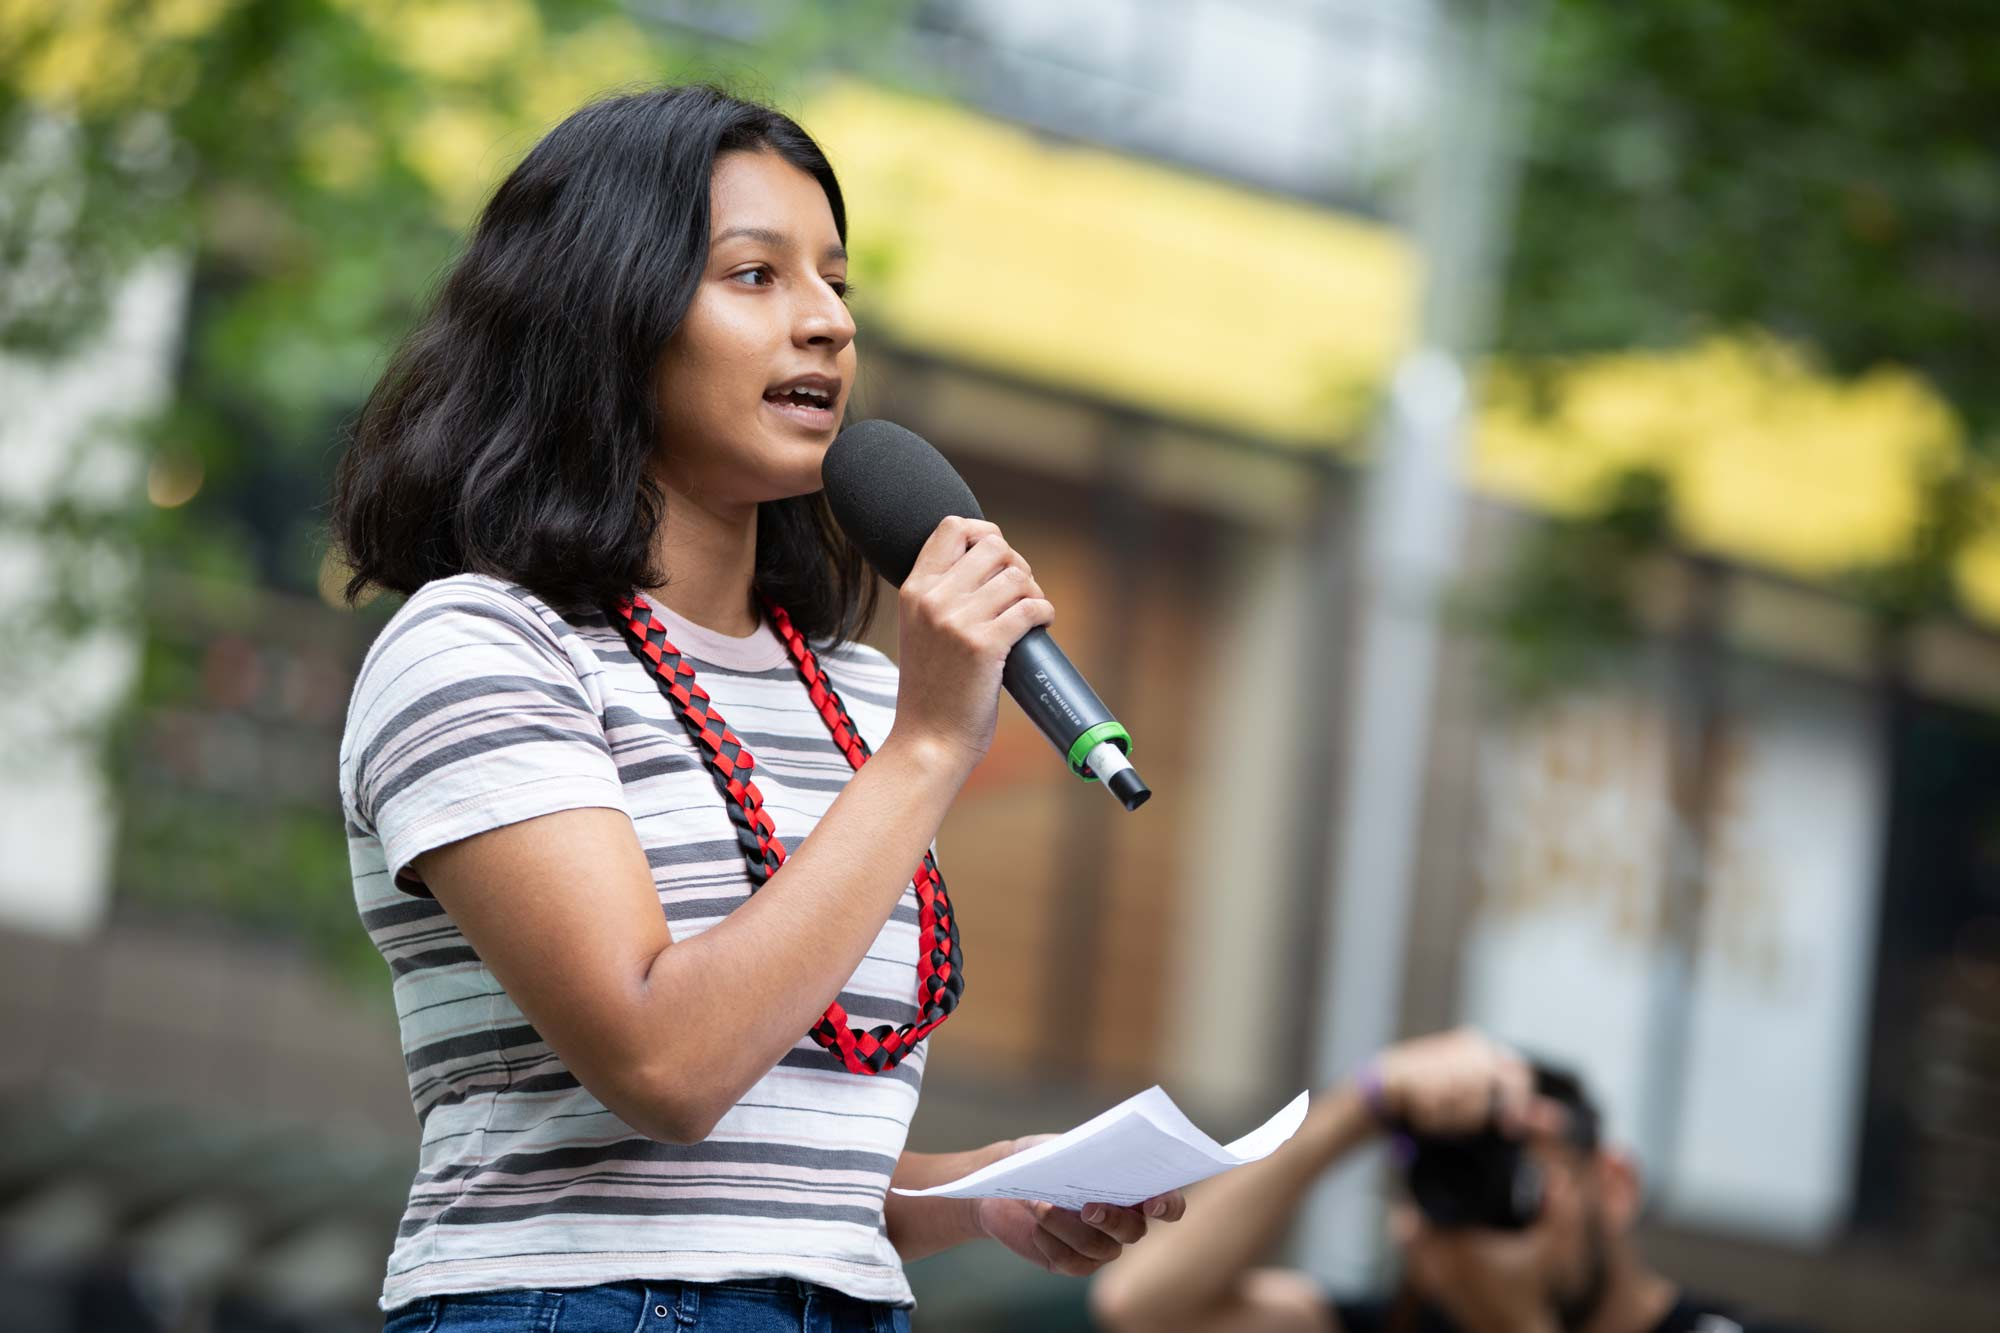 A young woman holding a microphone speaks at a rally